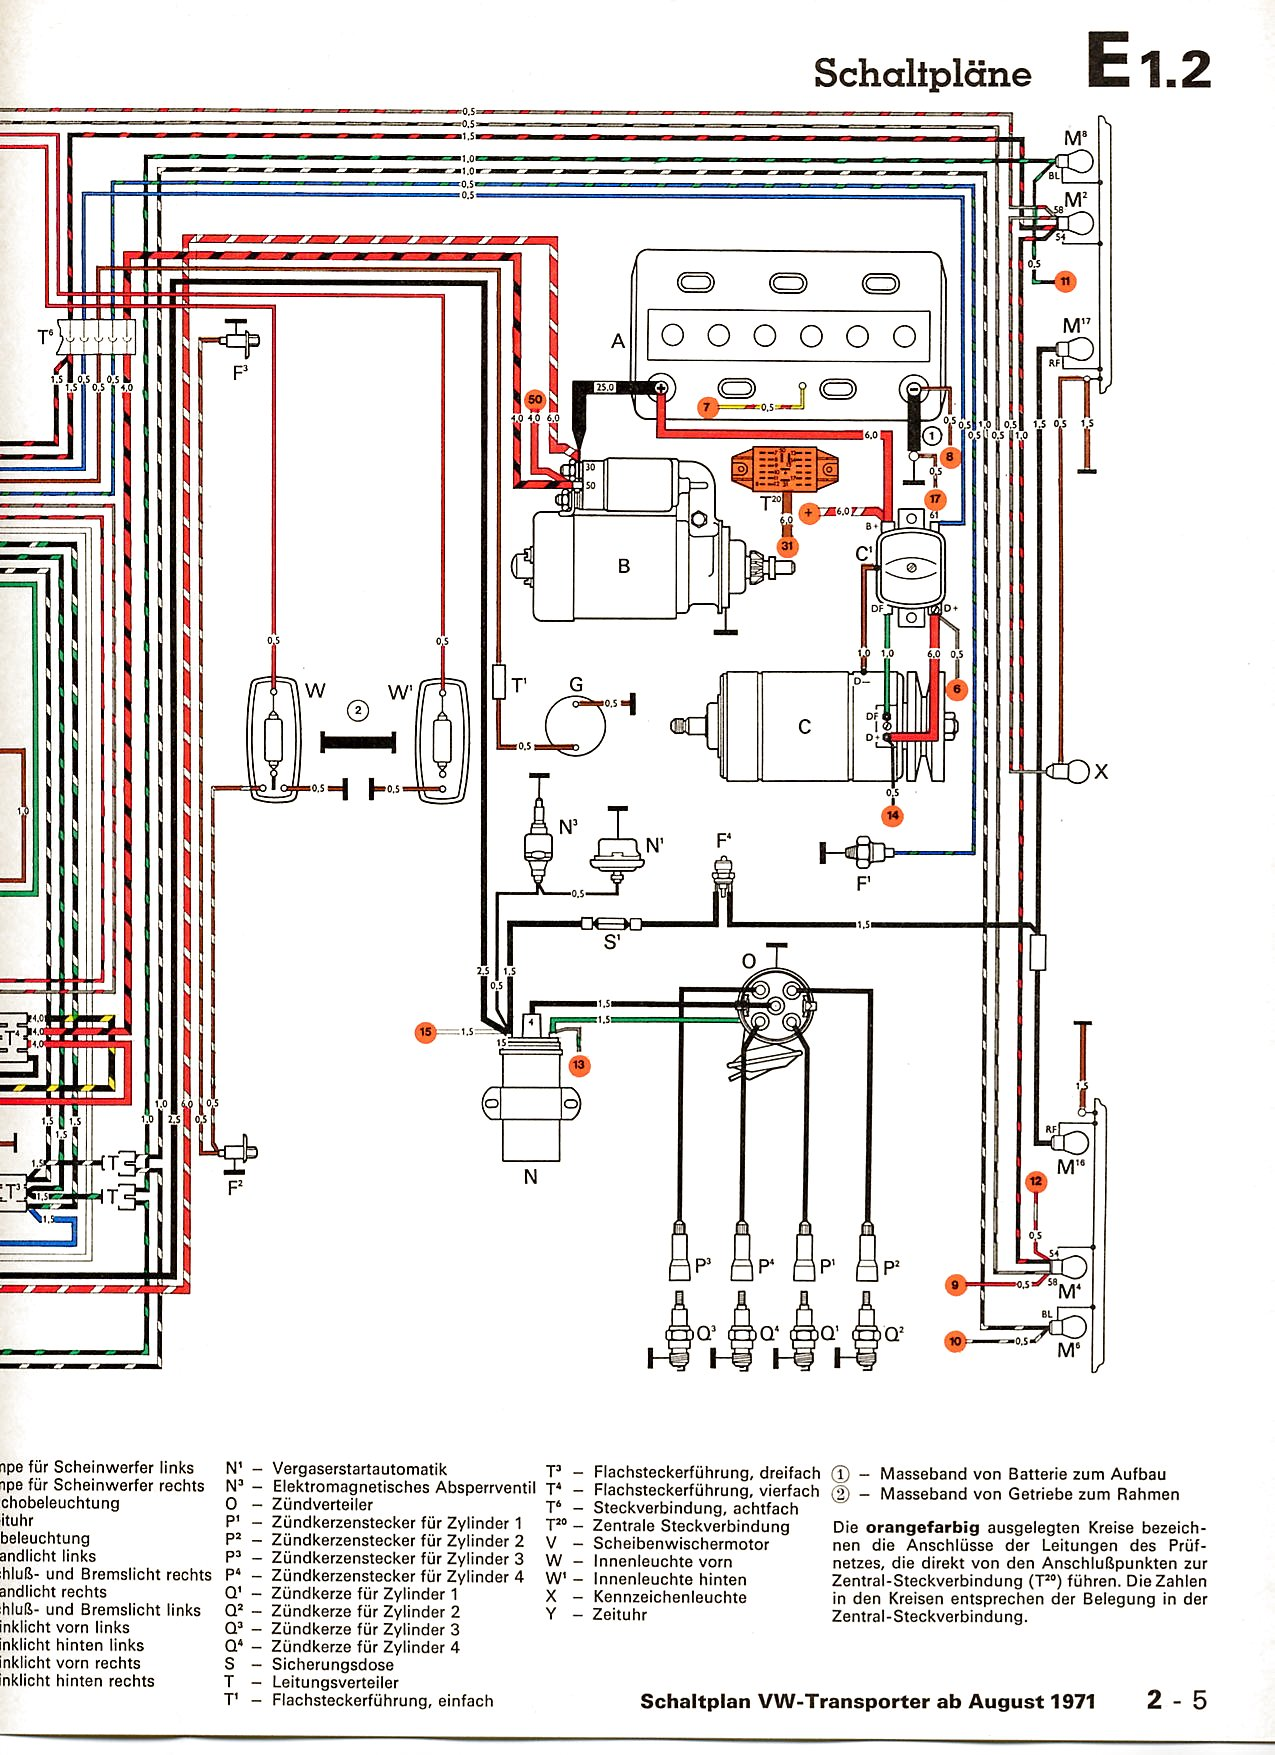 Transporter_from_August_1971 2 wiring diagrams \u2022 j squared co Basic Electrical Wiring Diagrams at readyjetset.co